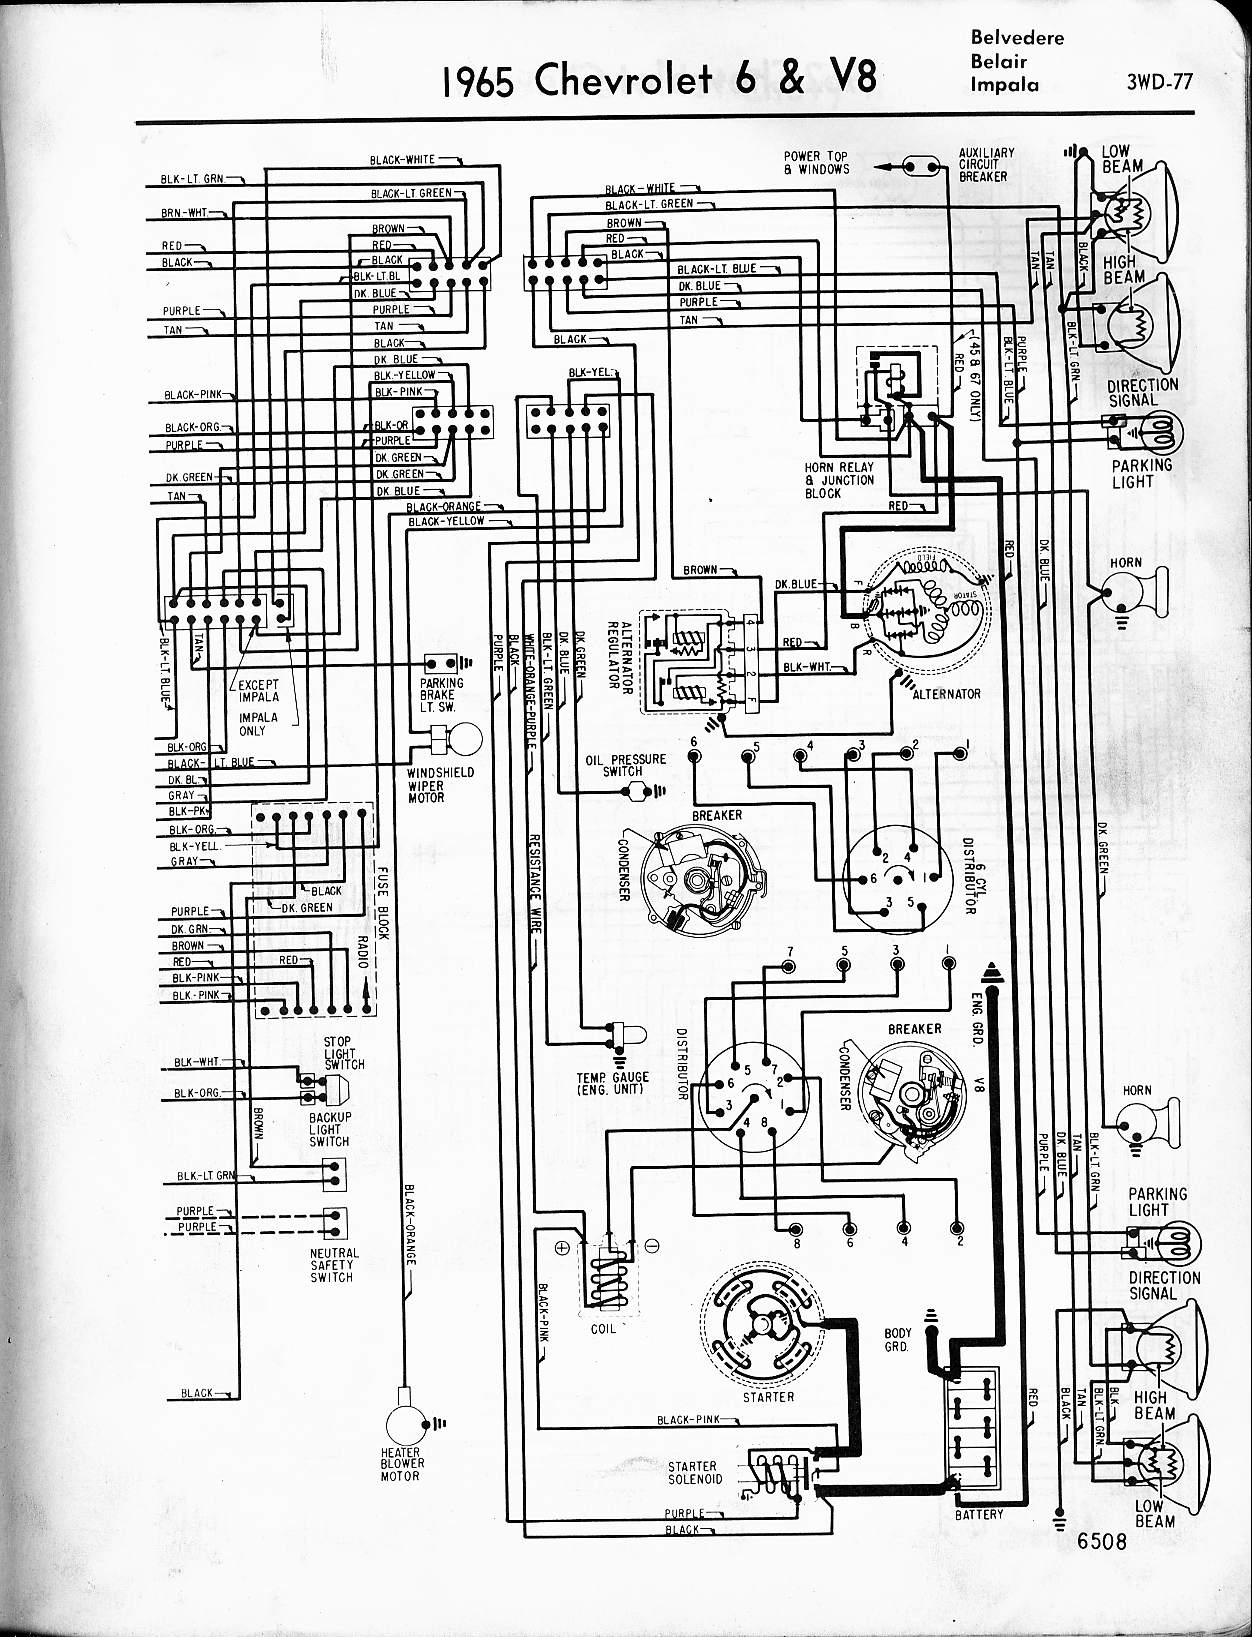 MWireChev65_3WD 077 chevy diagrams 1967 impala wiring diagram at crackthecode.co